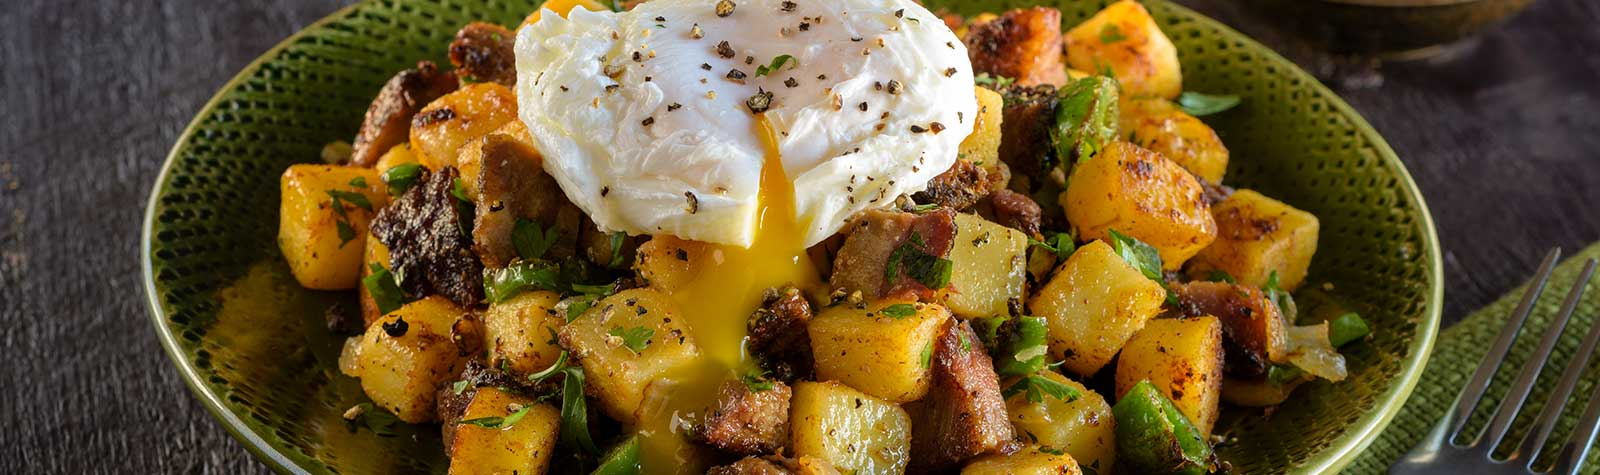 Beef Brisket Hash with Yukon Potatoes